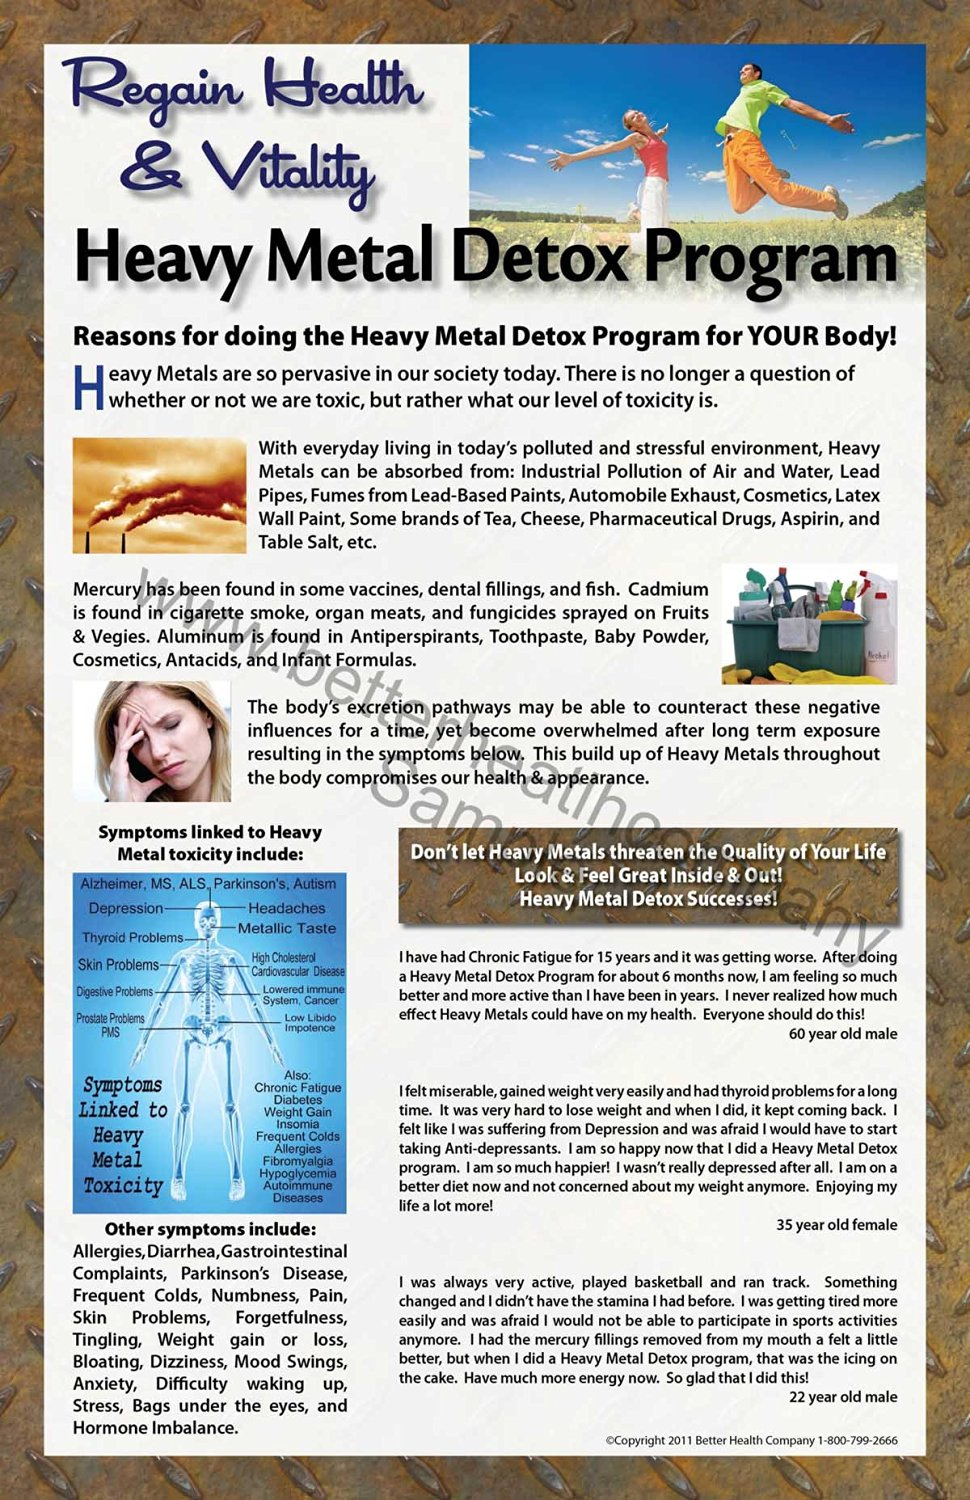 Cheap ion foot detox find ion foot detox deals on line at alibaba foot detox spa heavy metal detox 11 x 17 inch laminated promotional poster for promoting any heavy metal detox nvjuhfo Choice Image